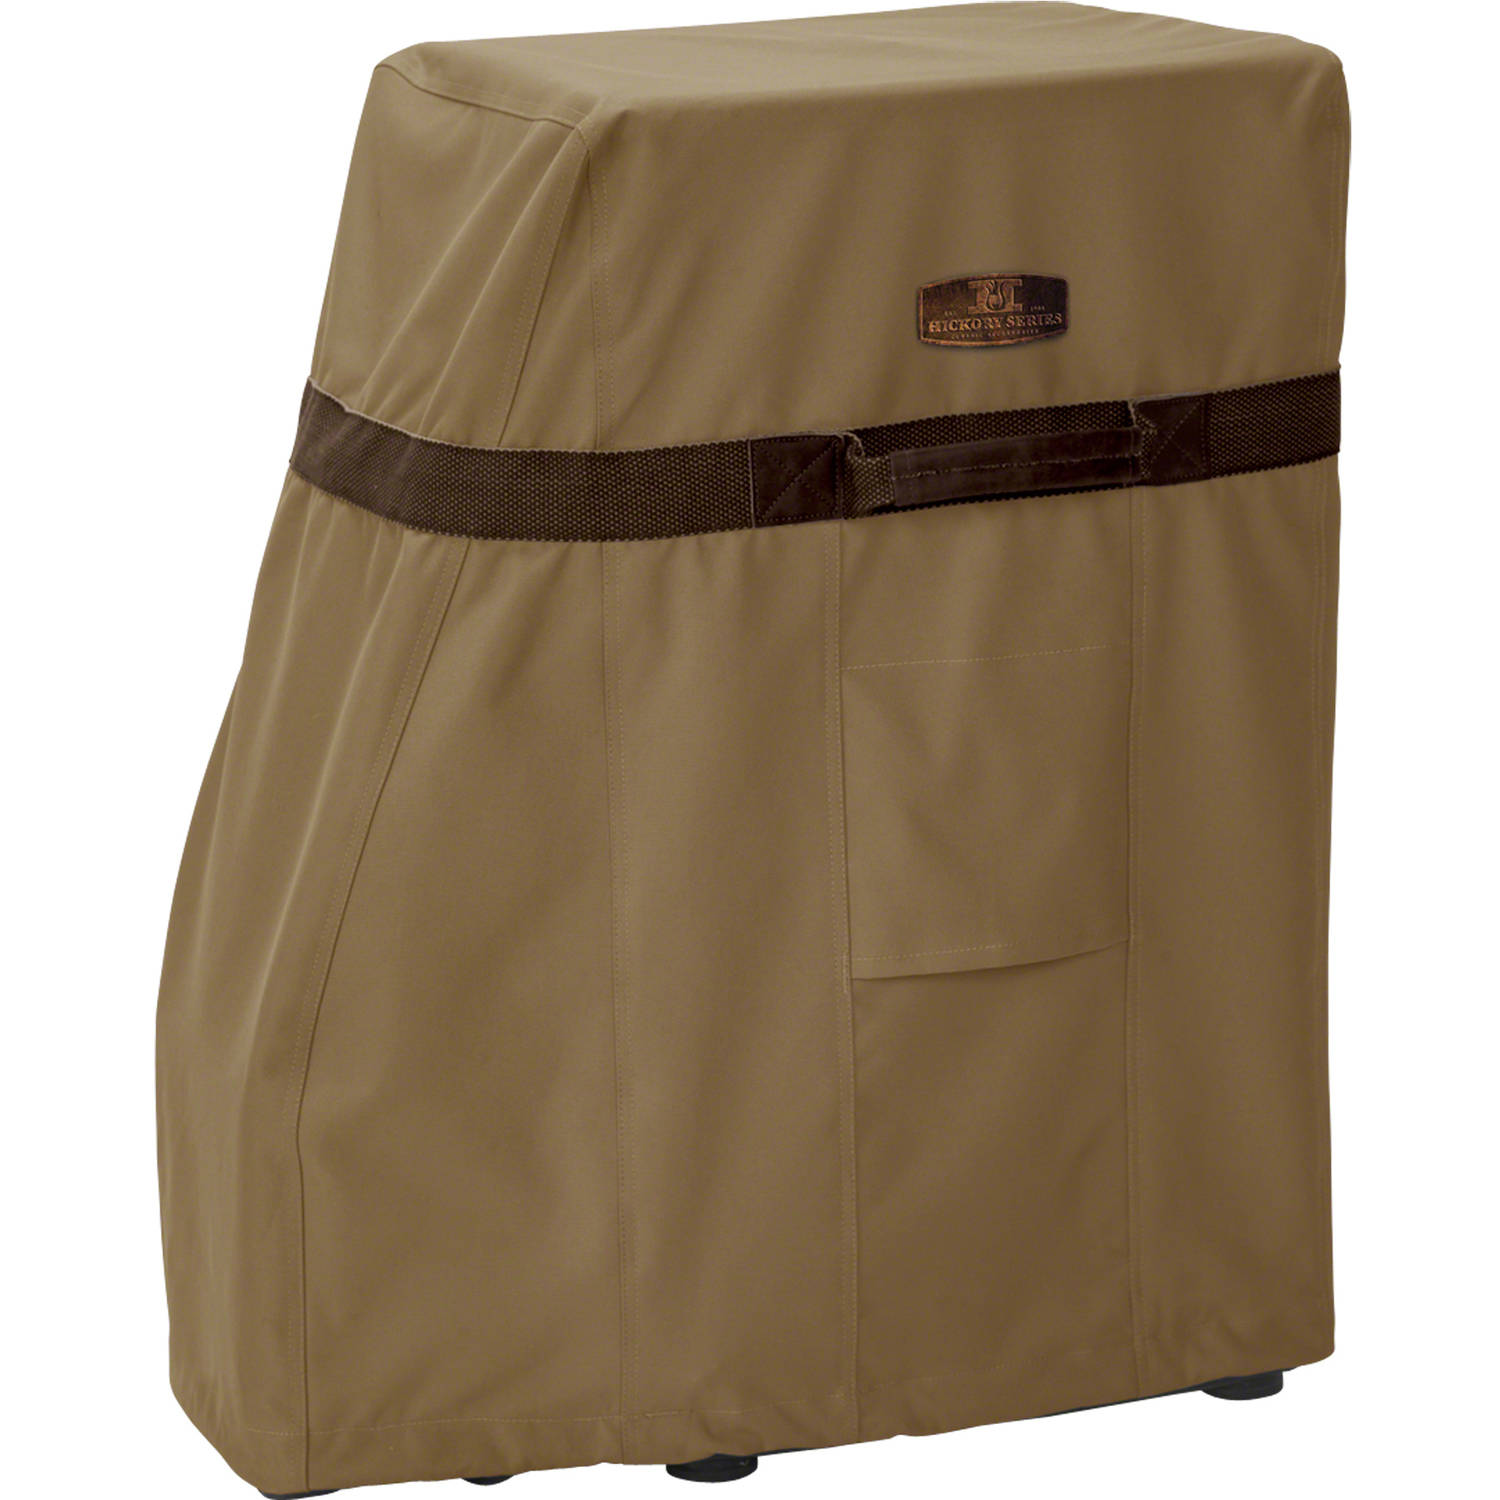 "Classic Accessories Hickory Square Smoker Patio Storage Cover, Up to 17""L x 14""W, Medium"